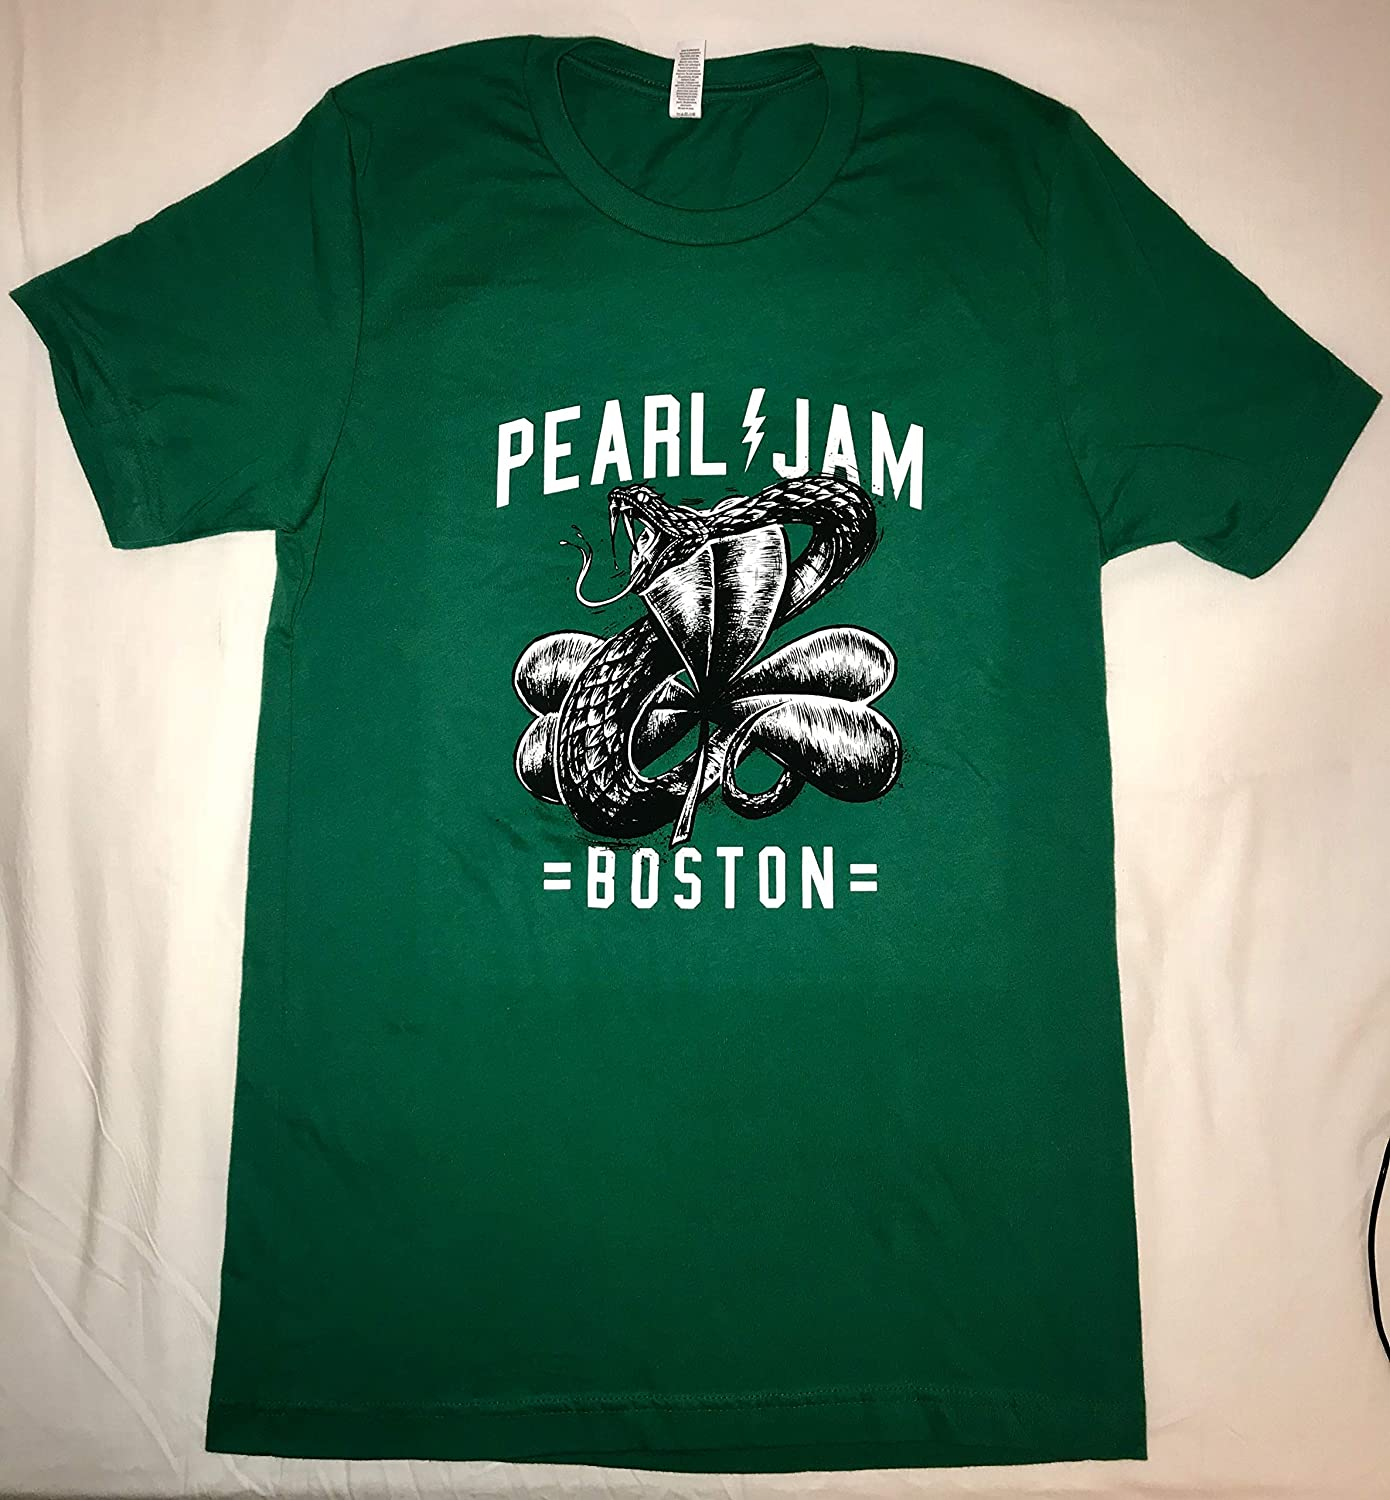 Pearl Jam t shirt boston fenway park snake clover green xl 2018 tour pj concert t-shirt new